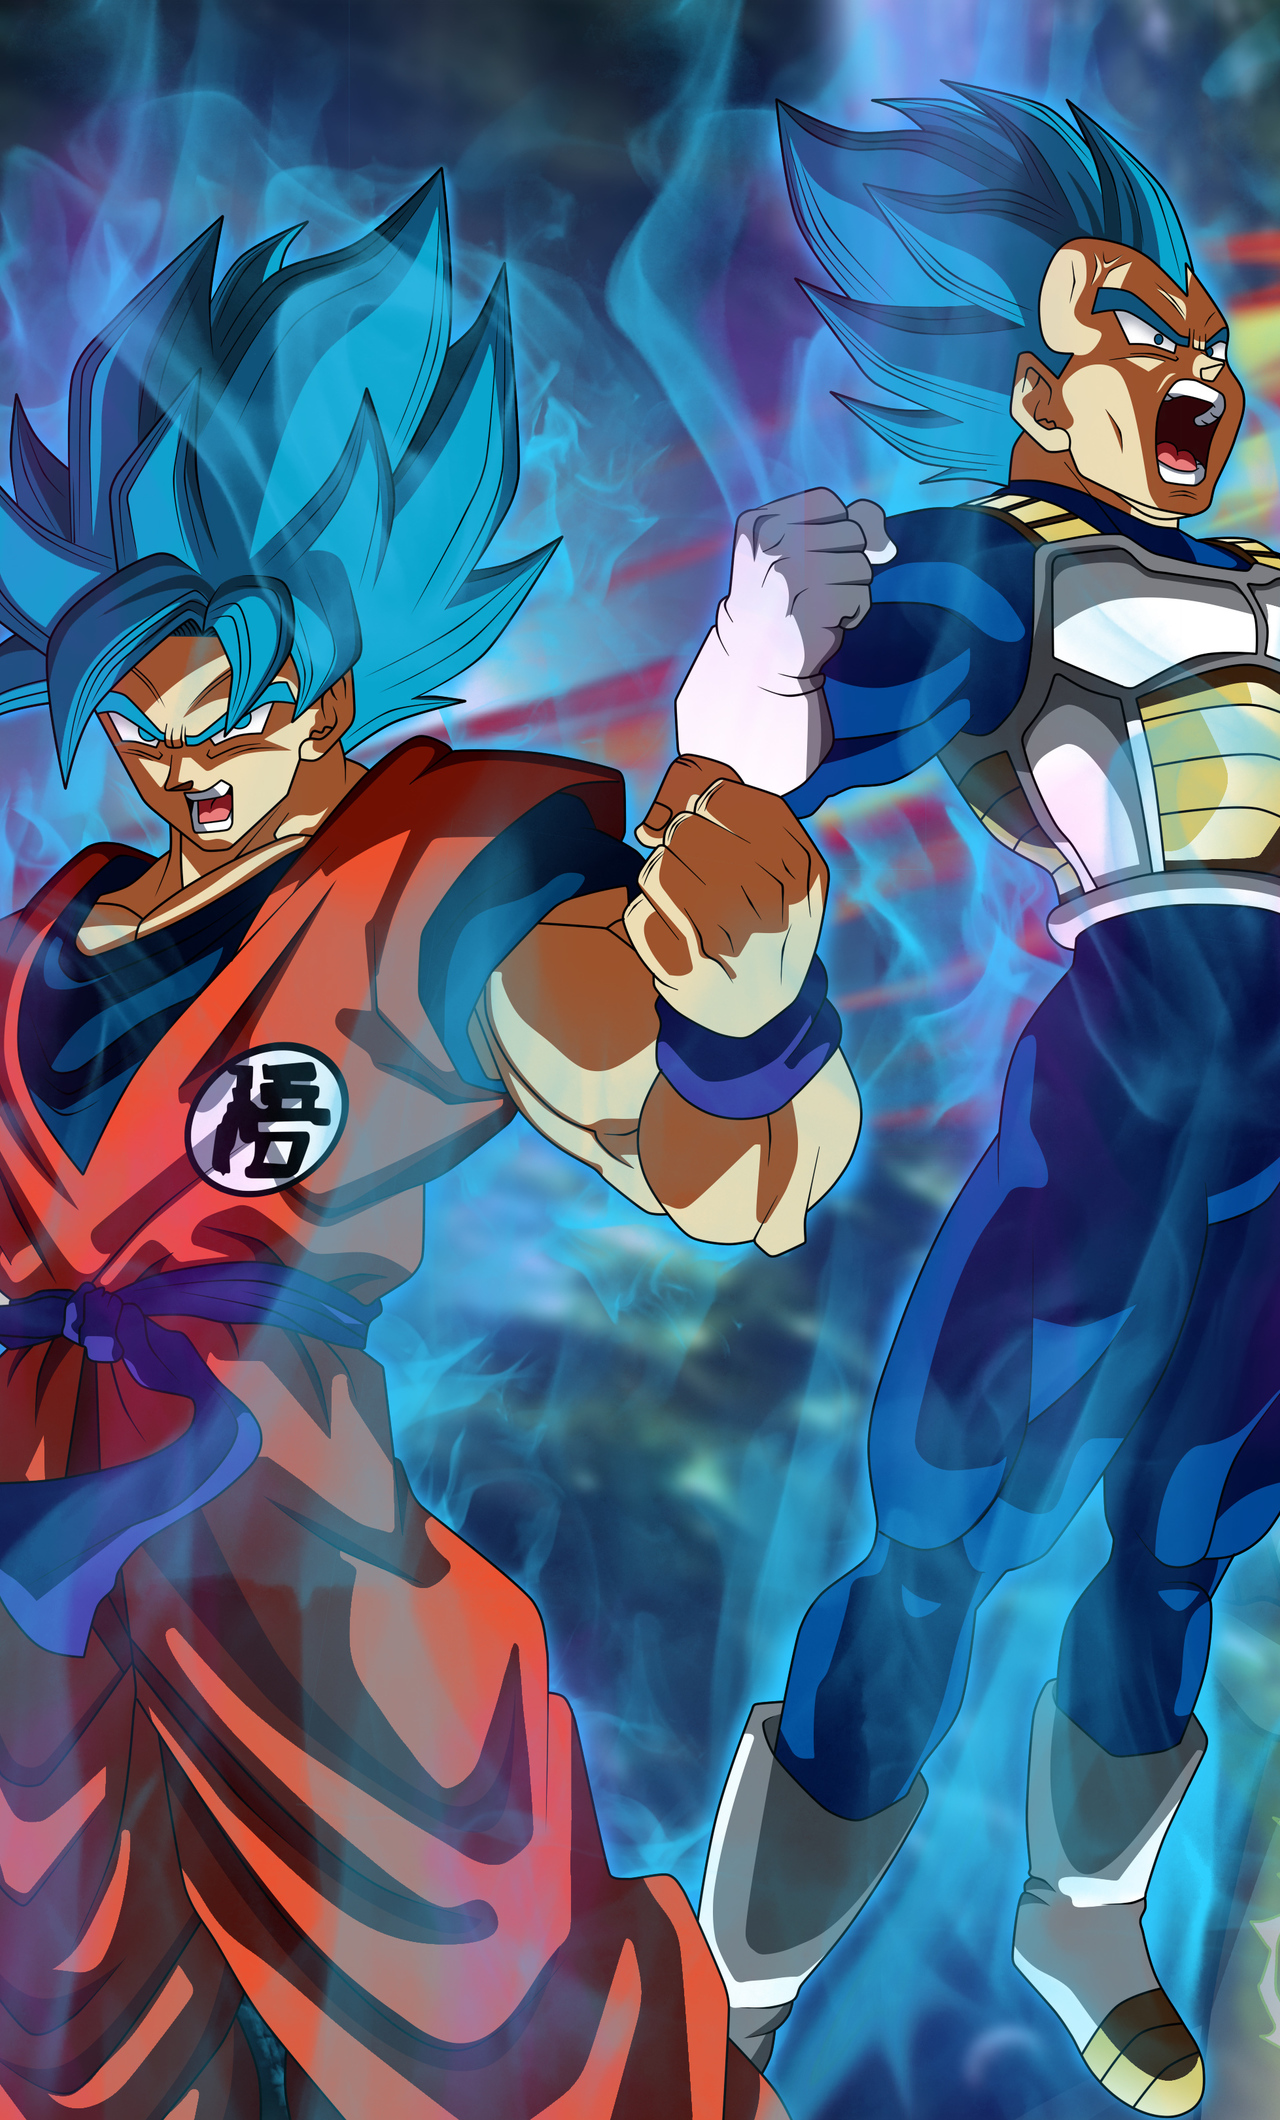 Iphone Goku And Vegeta Wallpaper 4k